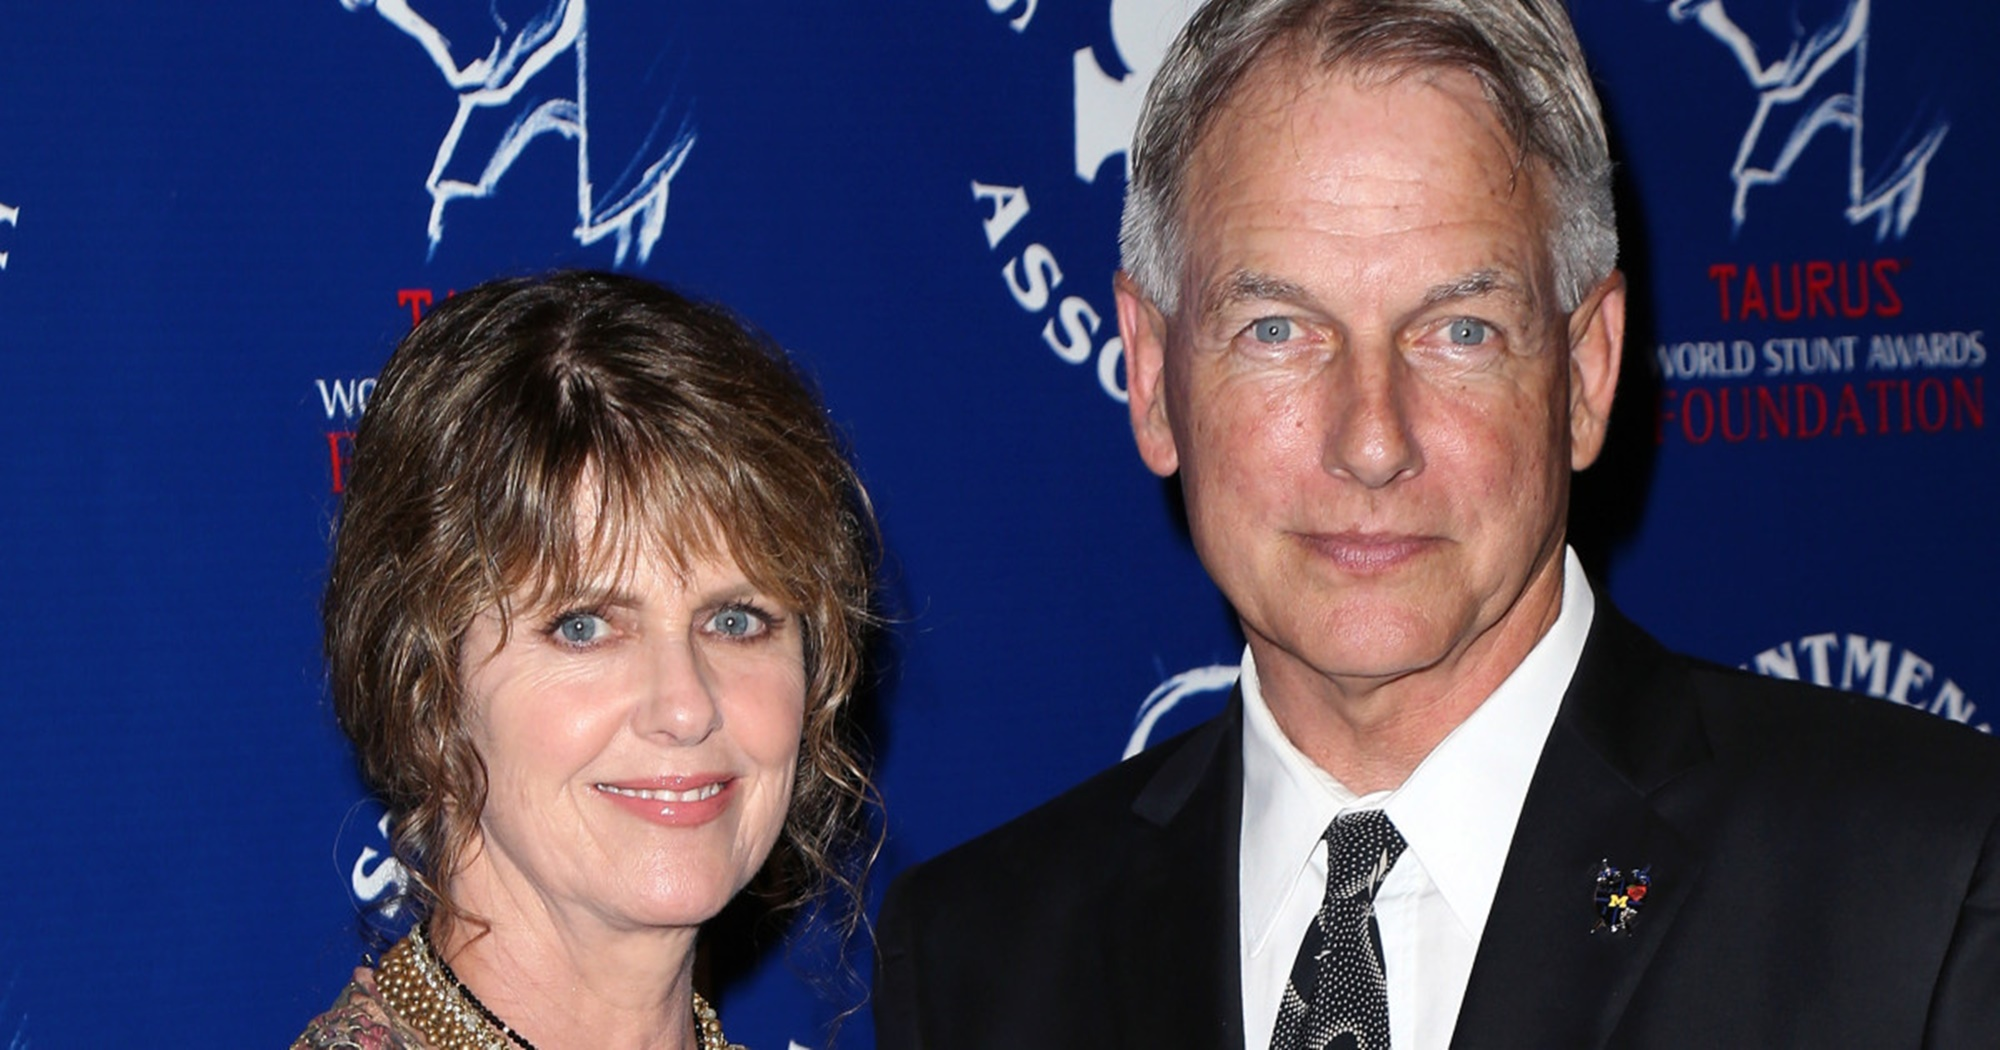 """mark-harmon-admits-his-marriage-to-pam-dawber-is-not-natural-in-hollywood-how-does-ncis-fit-in-his-32-year-union"""